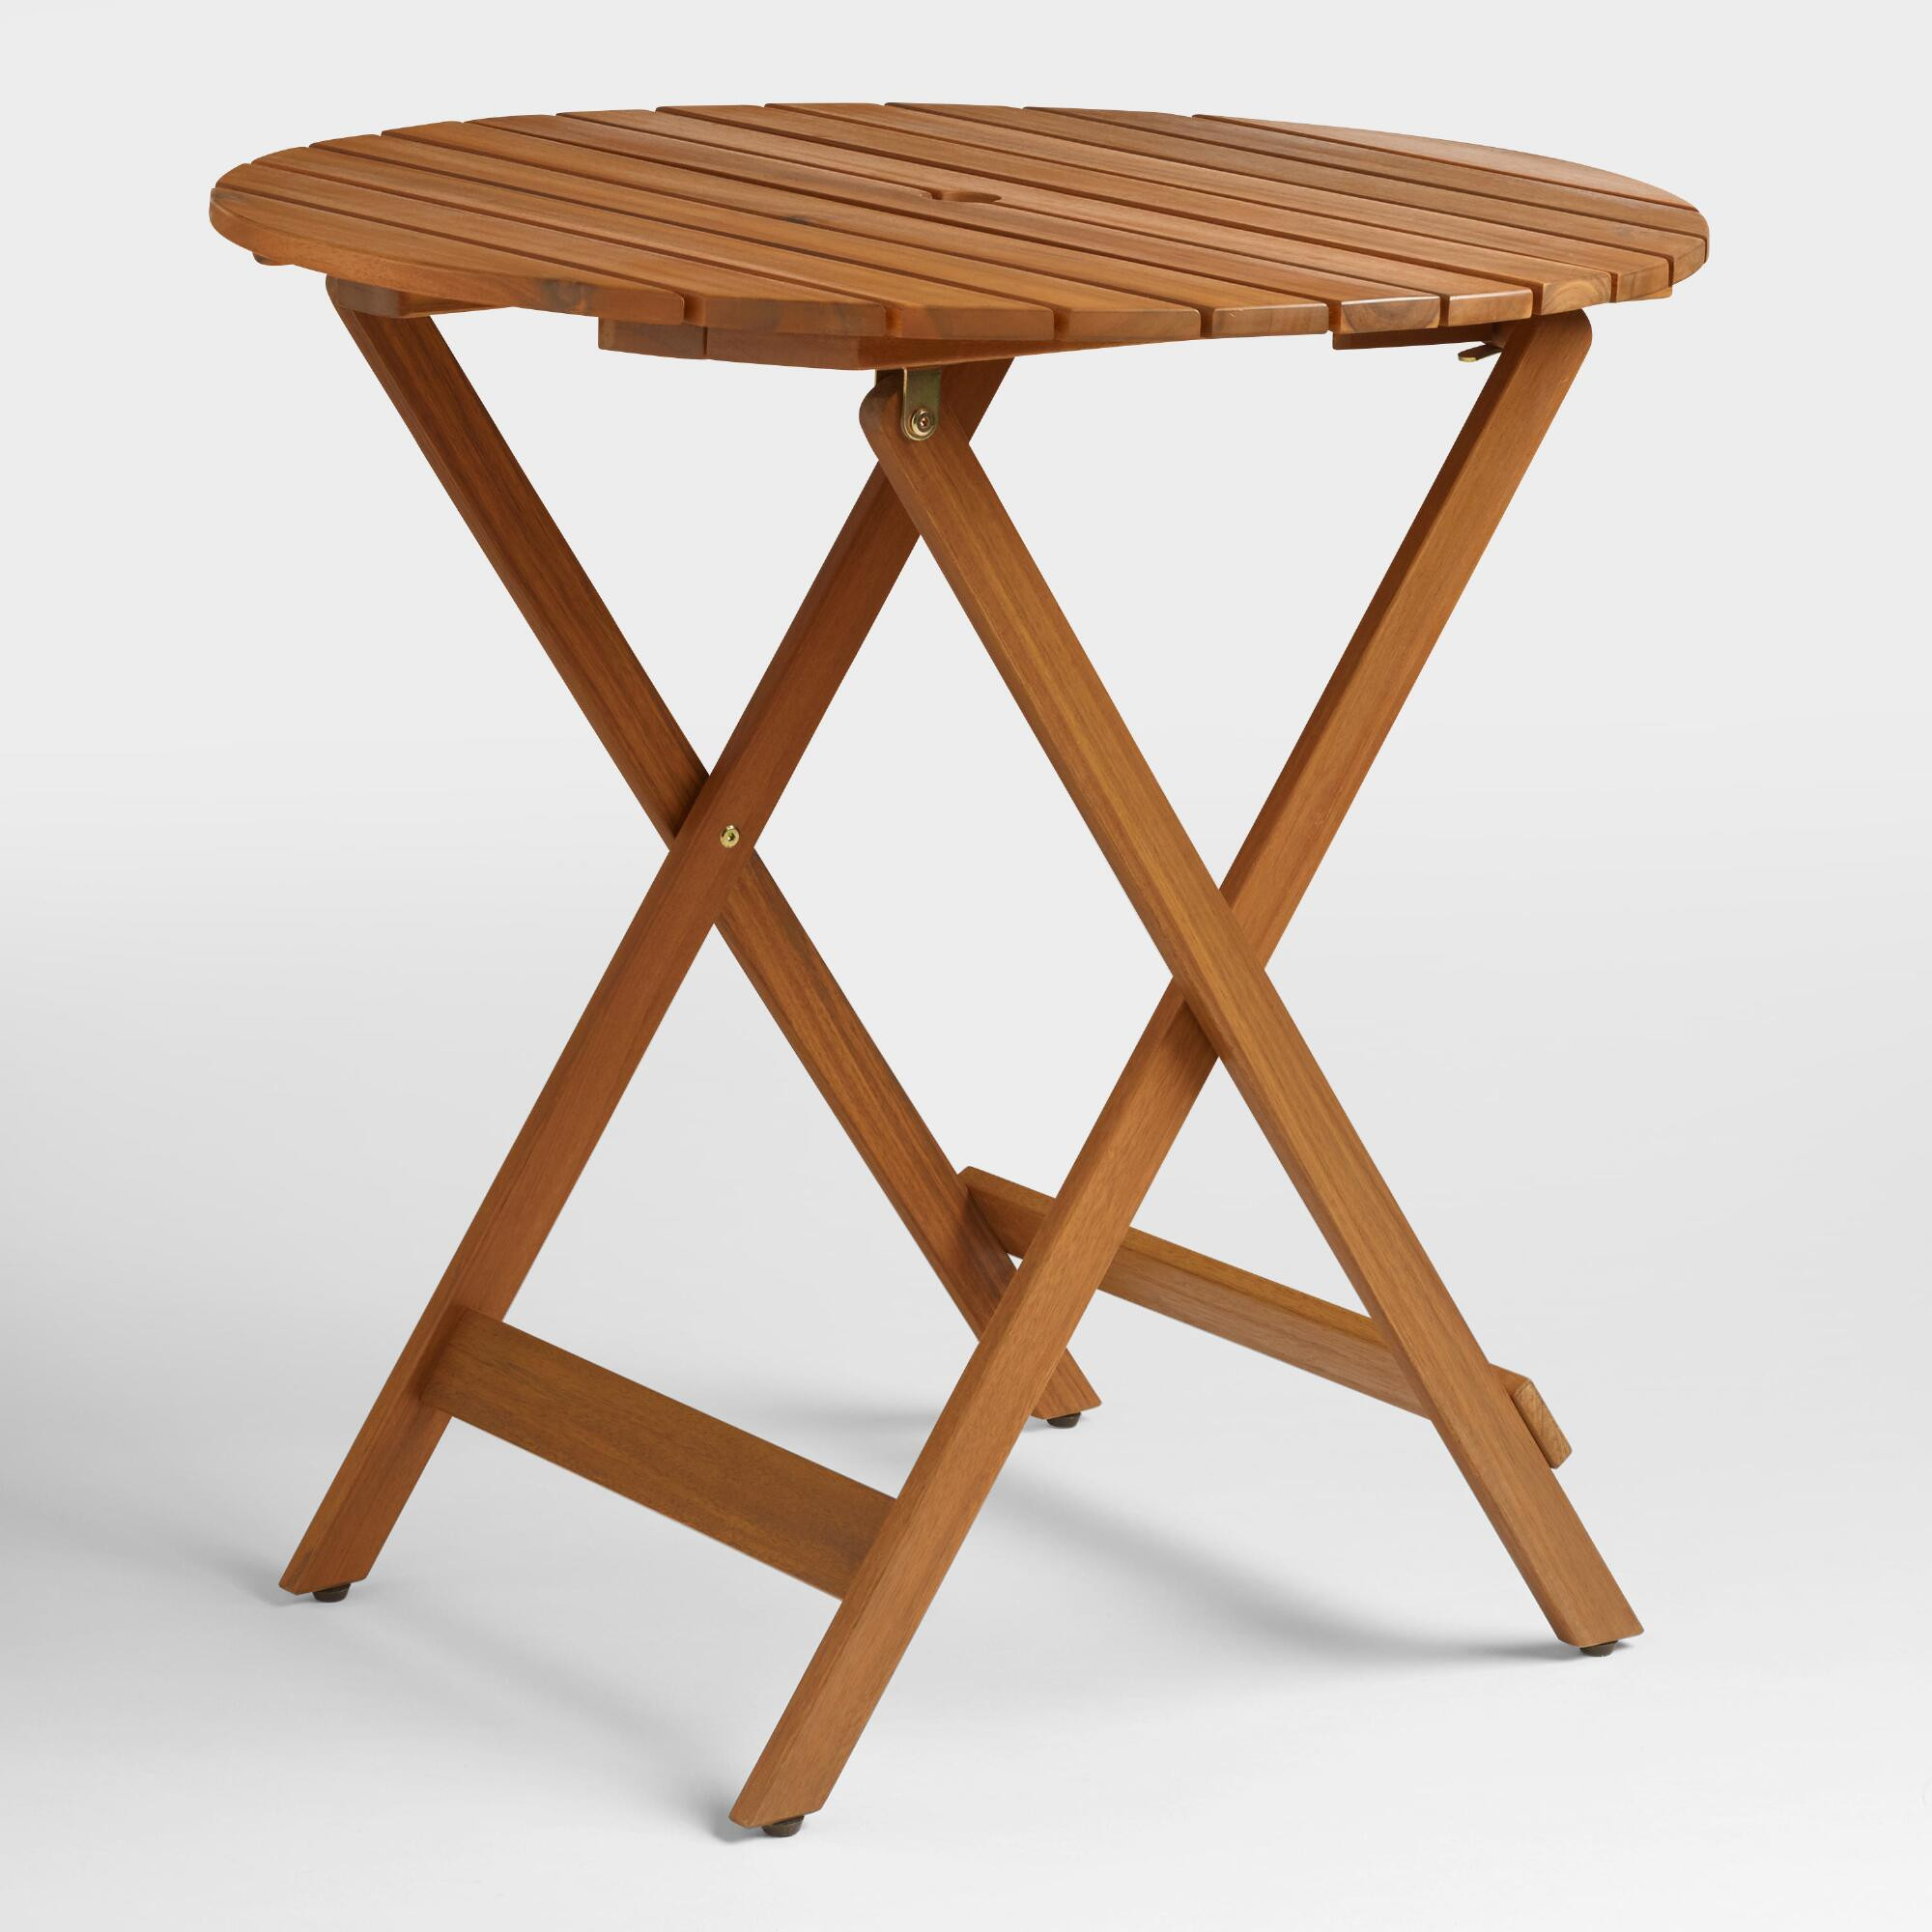 Best ideas about Folding Dining Table . Save or Pin Round Natural Wood Mika Folding Dining Table Now.